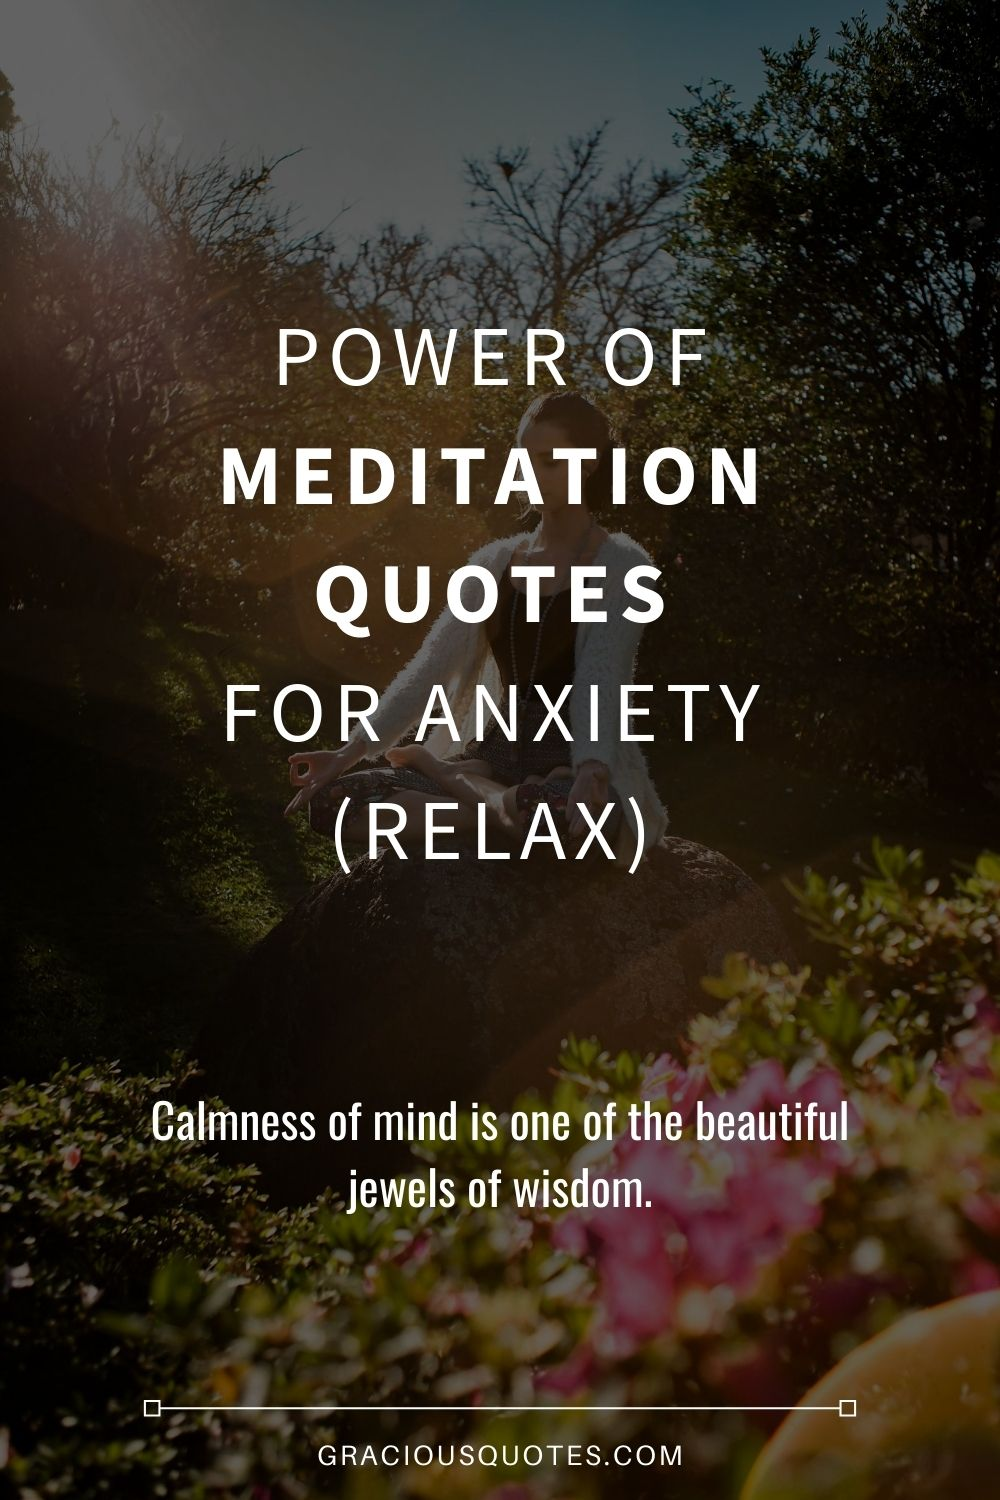 Power of Meditation Quotes for Anxiety (RELAX) - Gracious Quotes